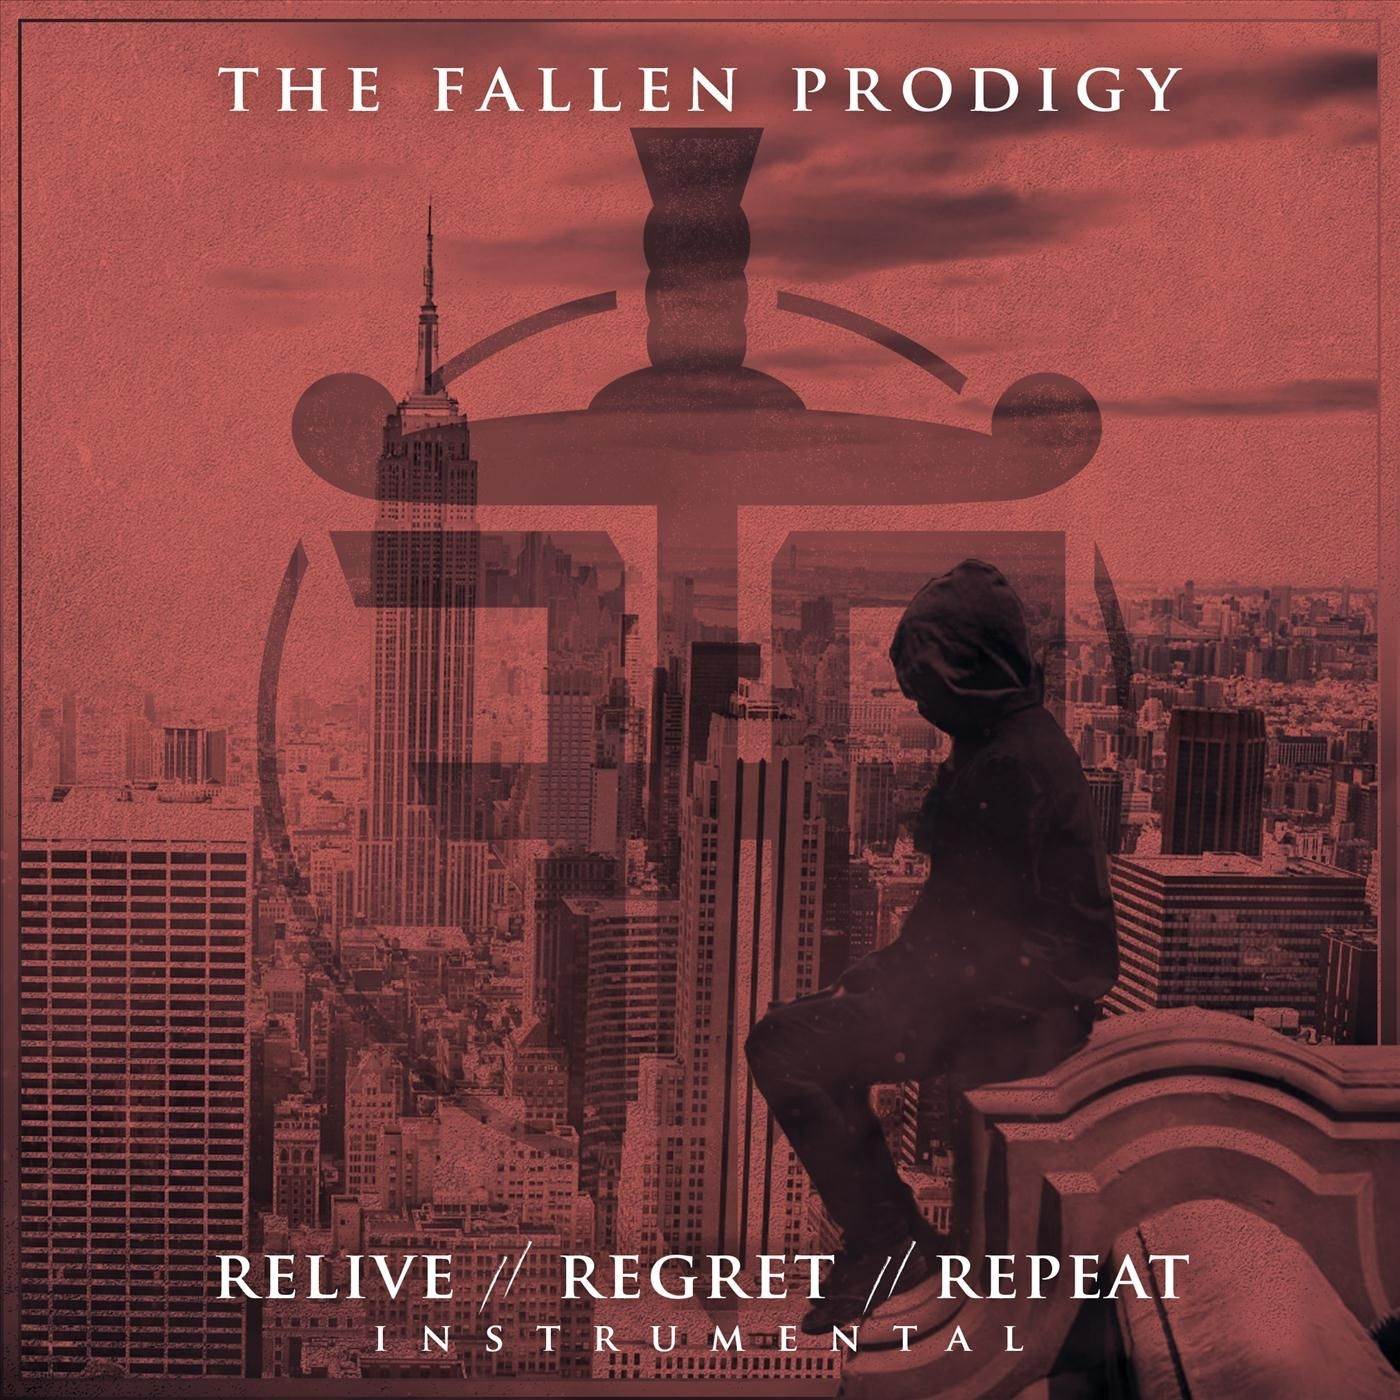 The Fallen Prodigy - Relive // Regret // Repeat (Instrumental) (2020)